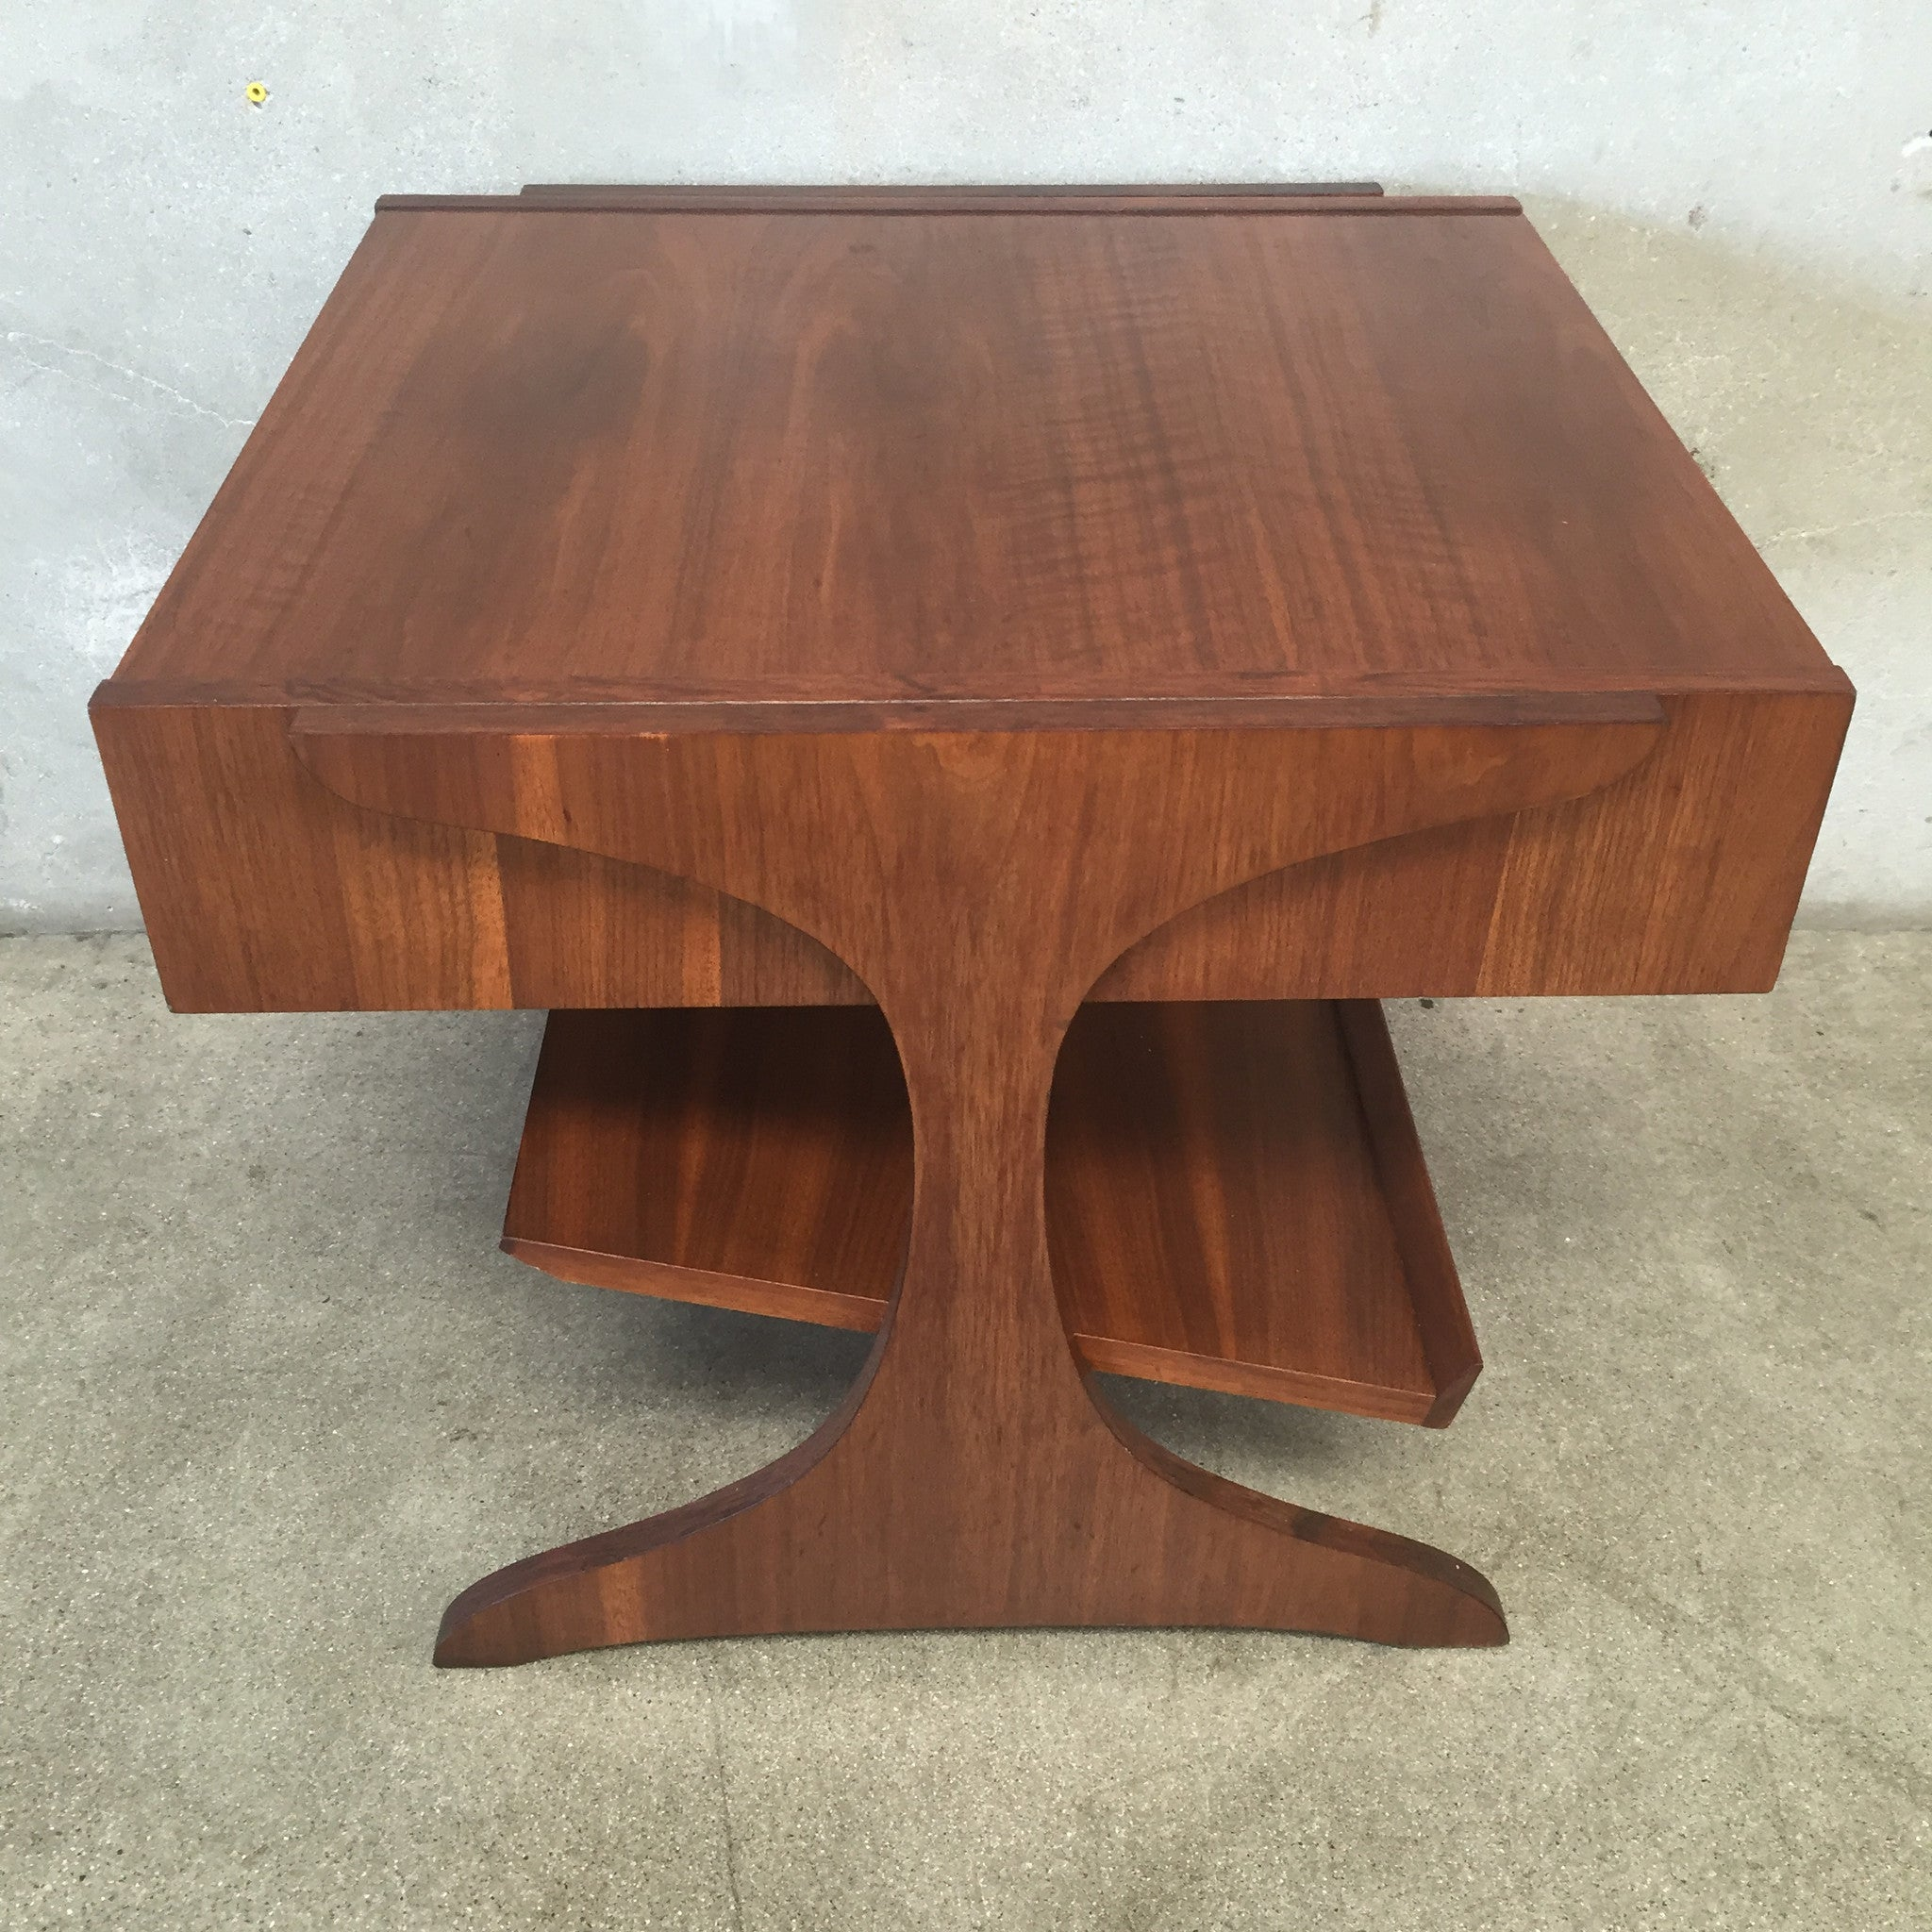 kroehler walnut end table with magazine rack - Kroehler Furniture